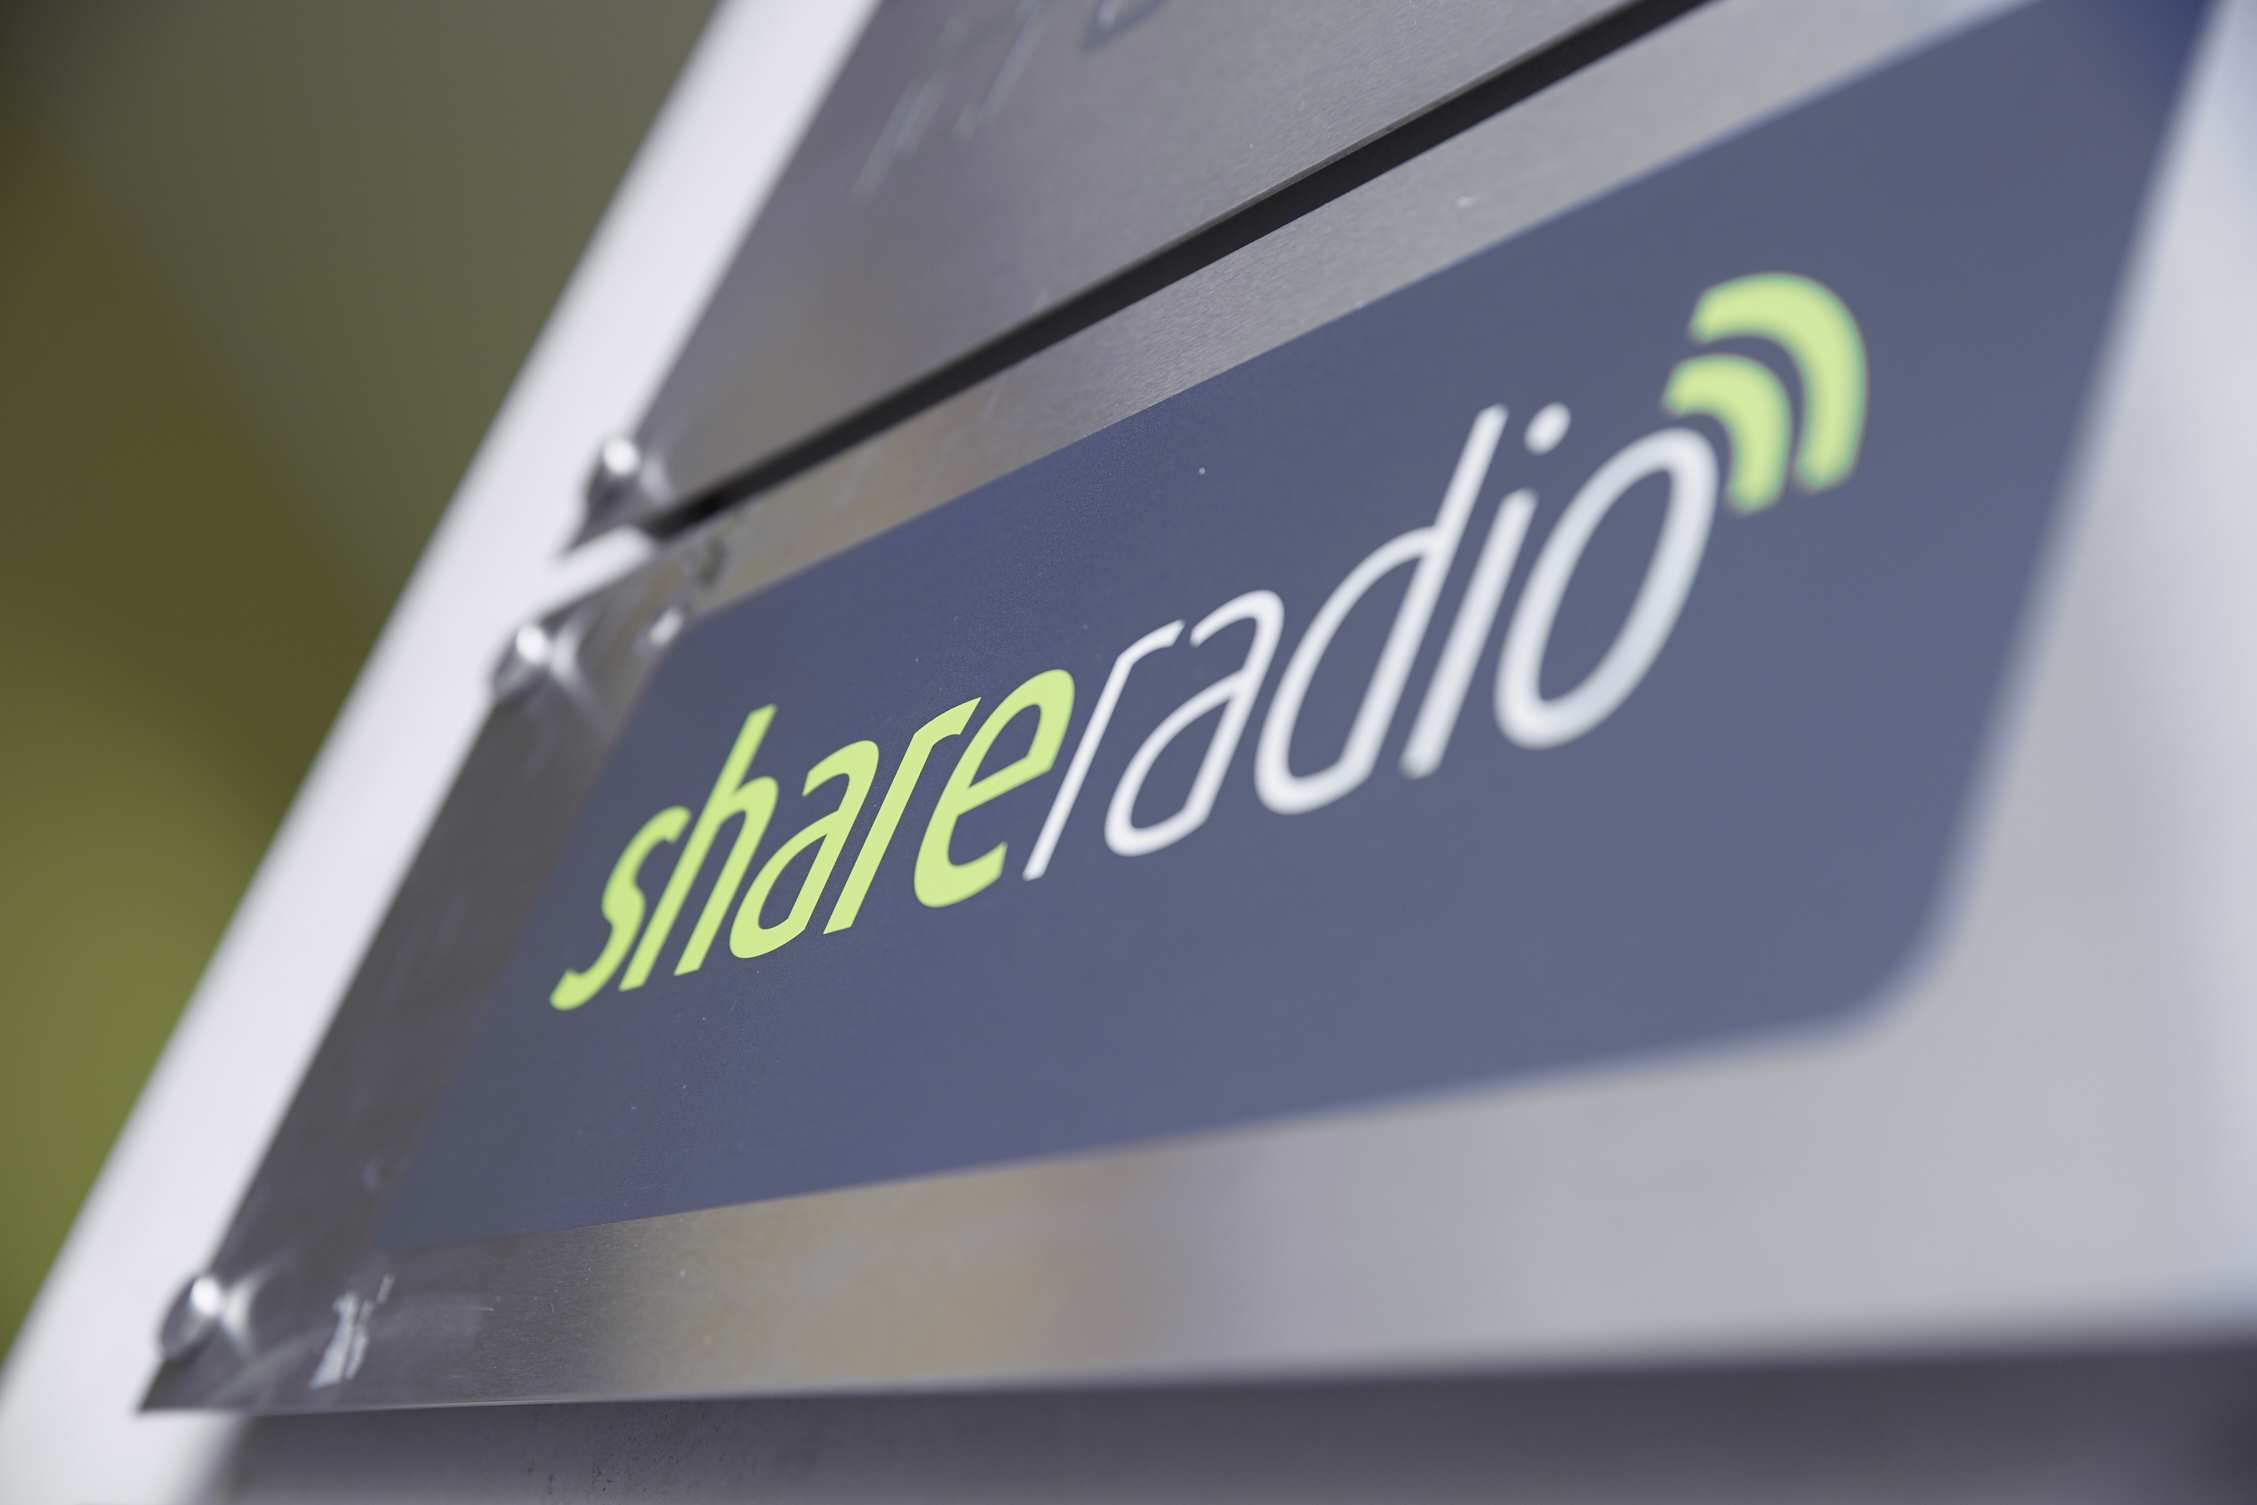 Share Radio logo on a sign